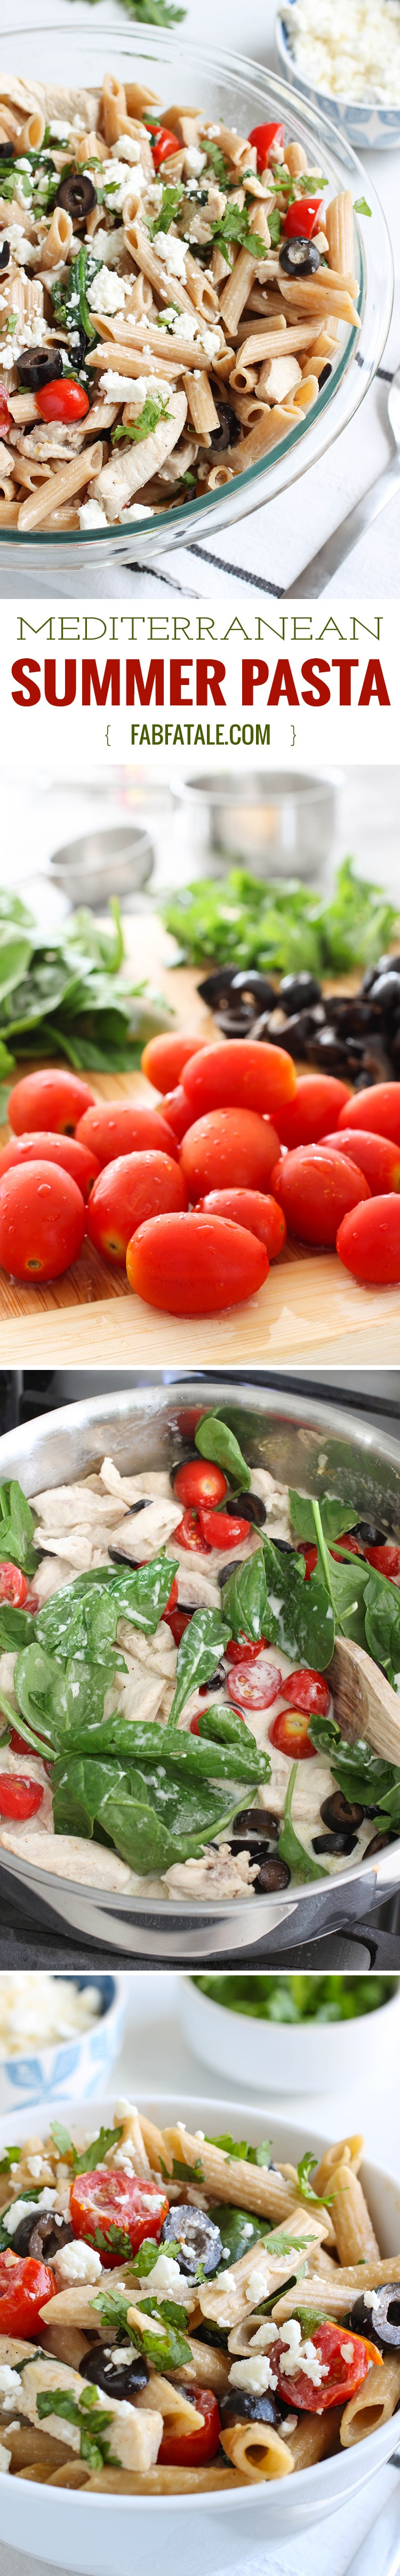 Mediterranean Pasta - whole wheat penne pasta, spinach, grape tomatoes, black olives and cilantro in a light cream sauce make this recipe super fresh for summer.